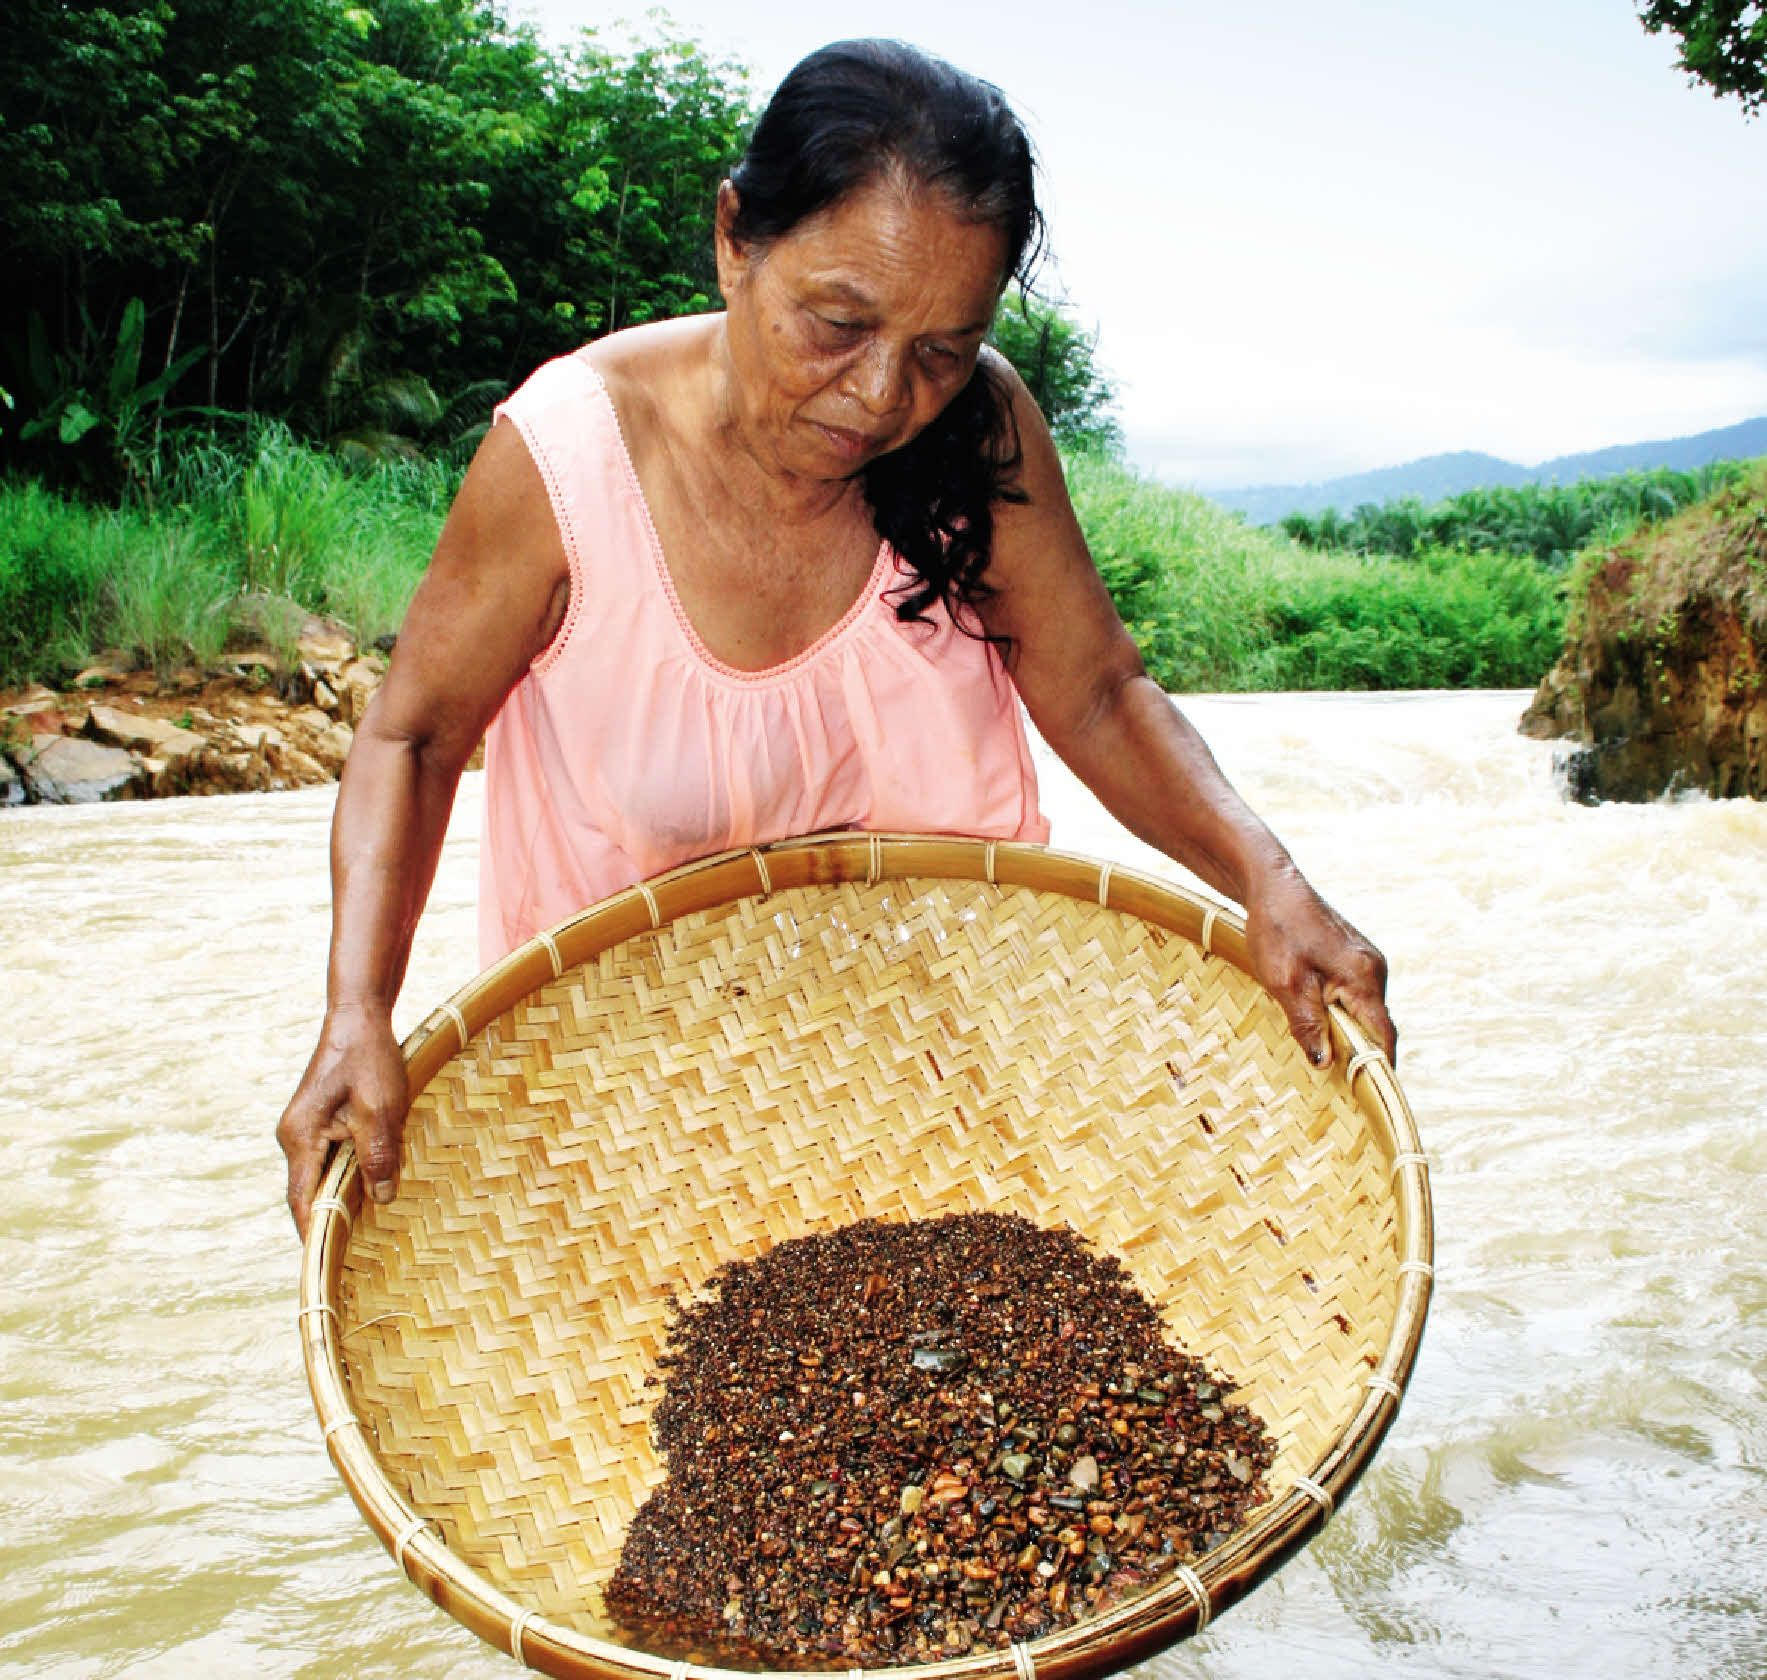 Sifting for gems the traditional way (Martin Symington)